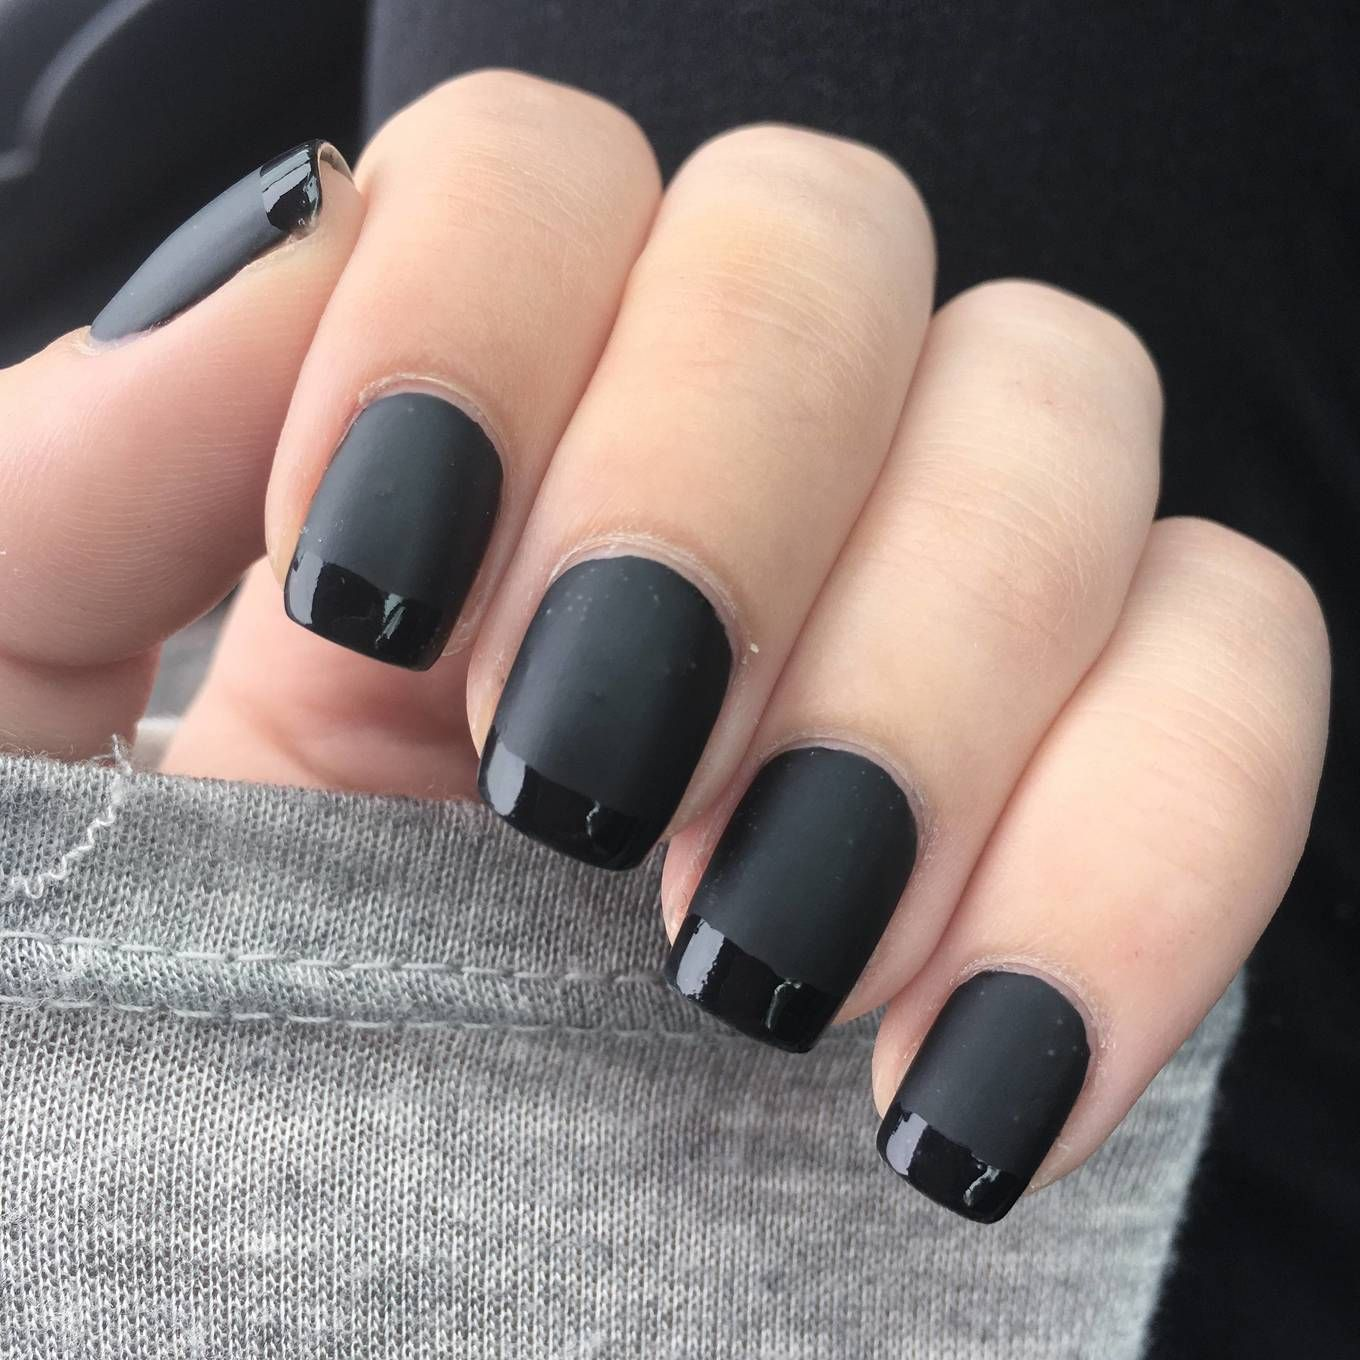 Matte Black With Gloss Tips Matte Nails Design Matte Black Nail Polish Matte Black Nails